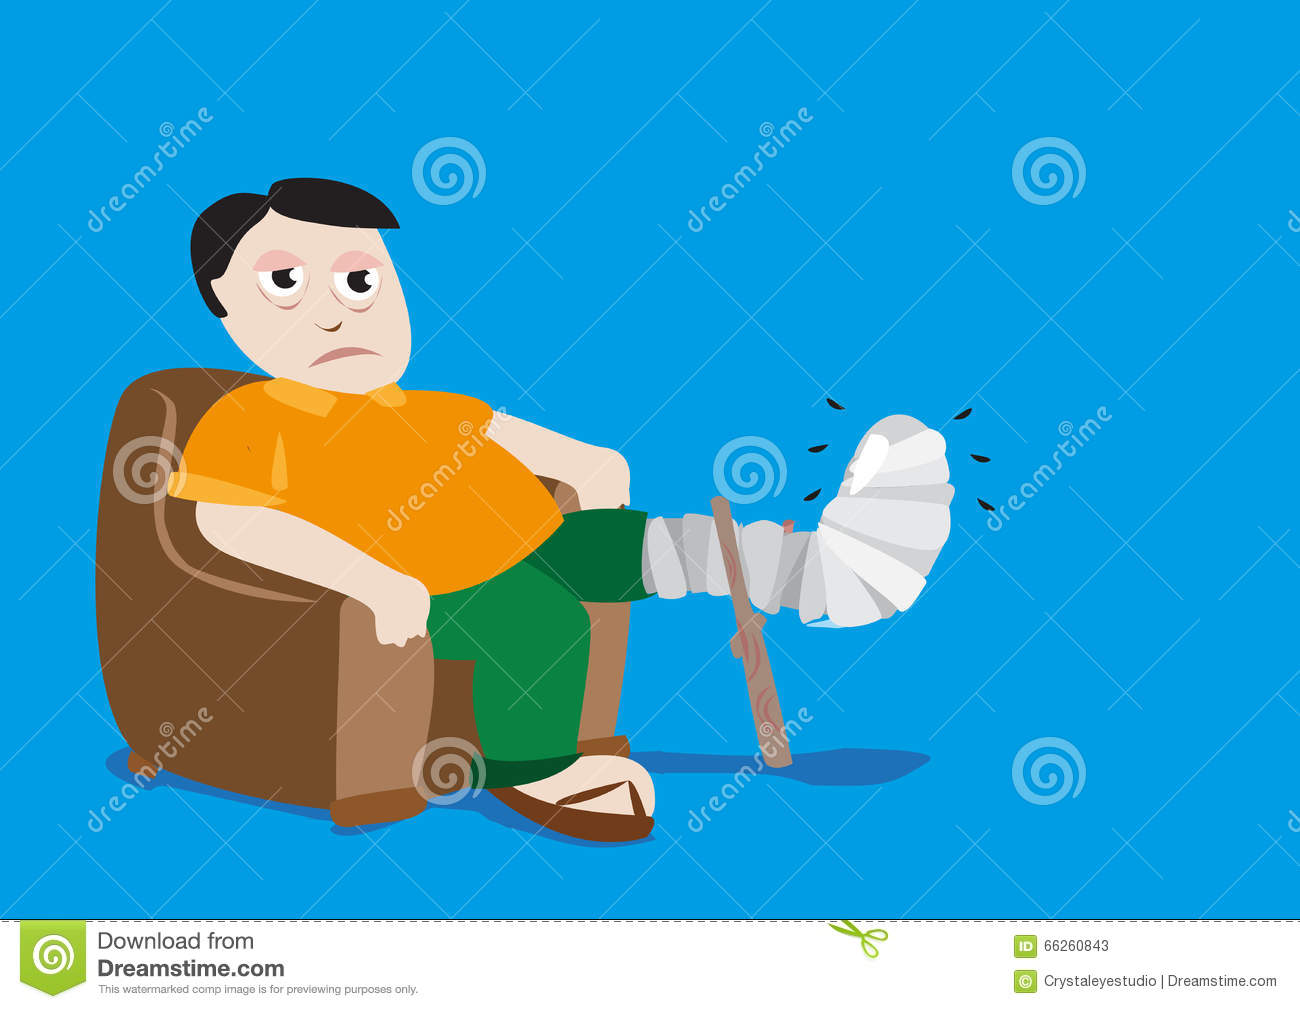 Man With Fractured Leg In A Cast. Editable Clip Art. Stock Vector.